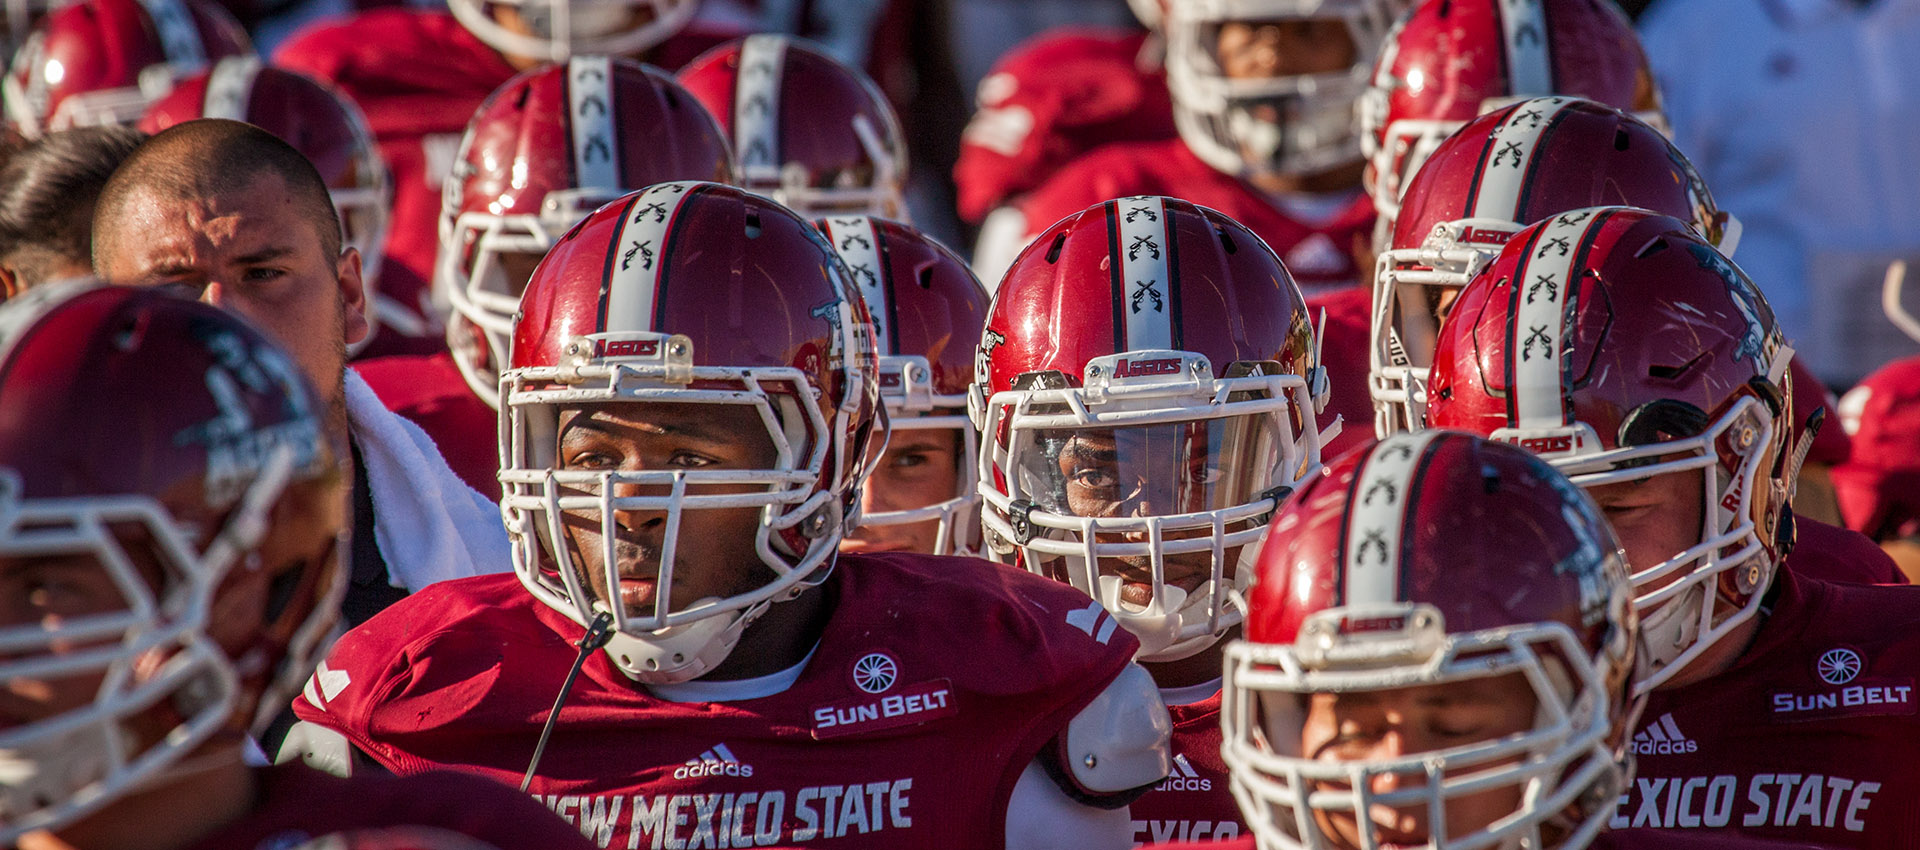 NEW MEXICO STATE AGGIES BOLSTER ALBUQUERQUE COVERAGE BY ADDING KNMM-AM 1150 TO RADIO NETWORK